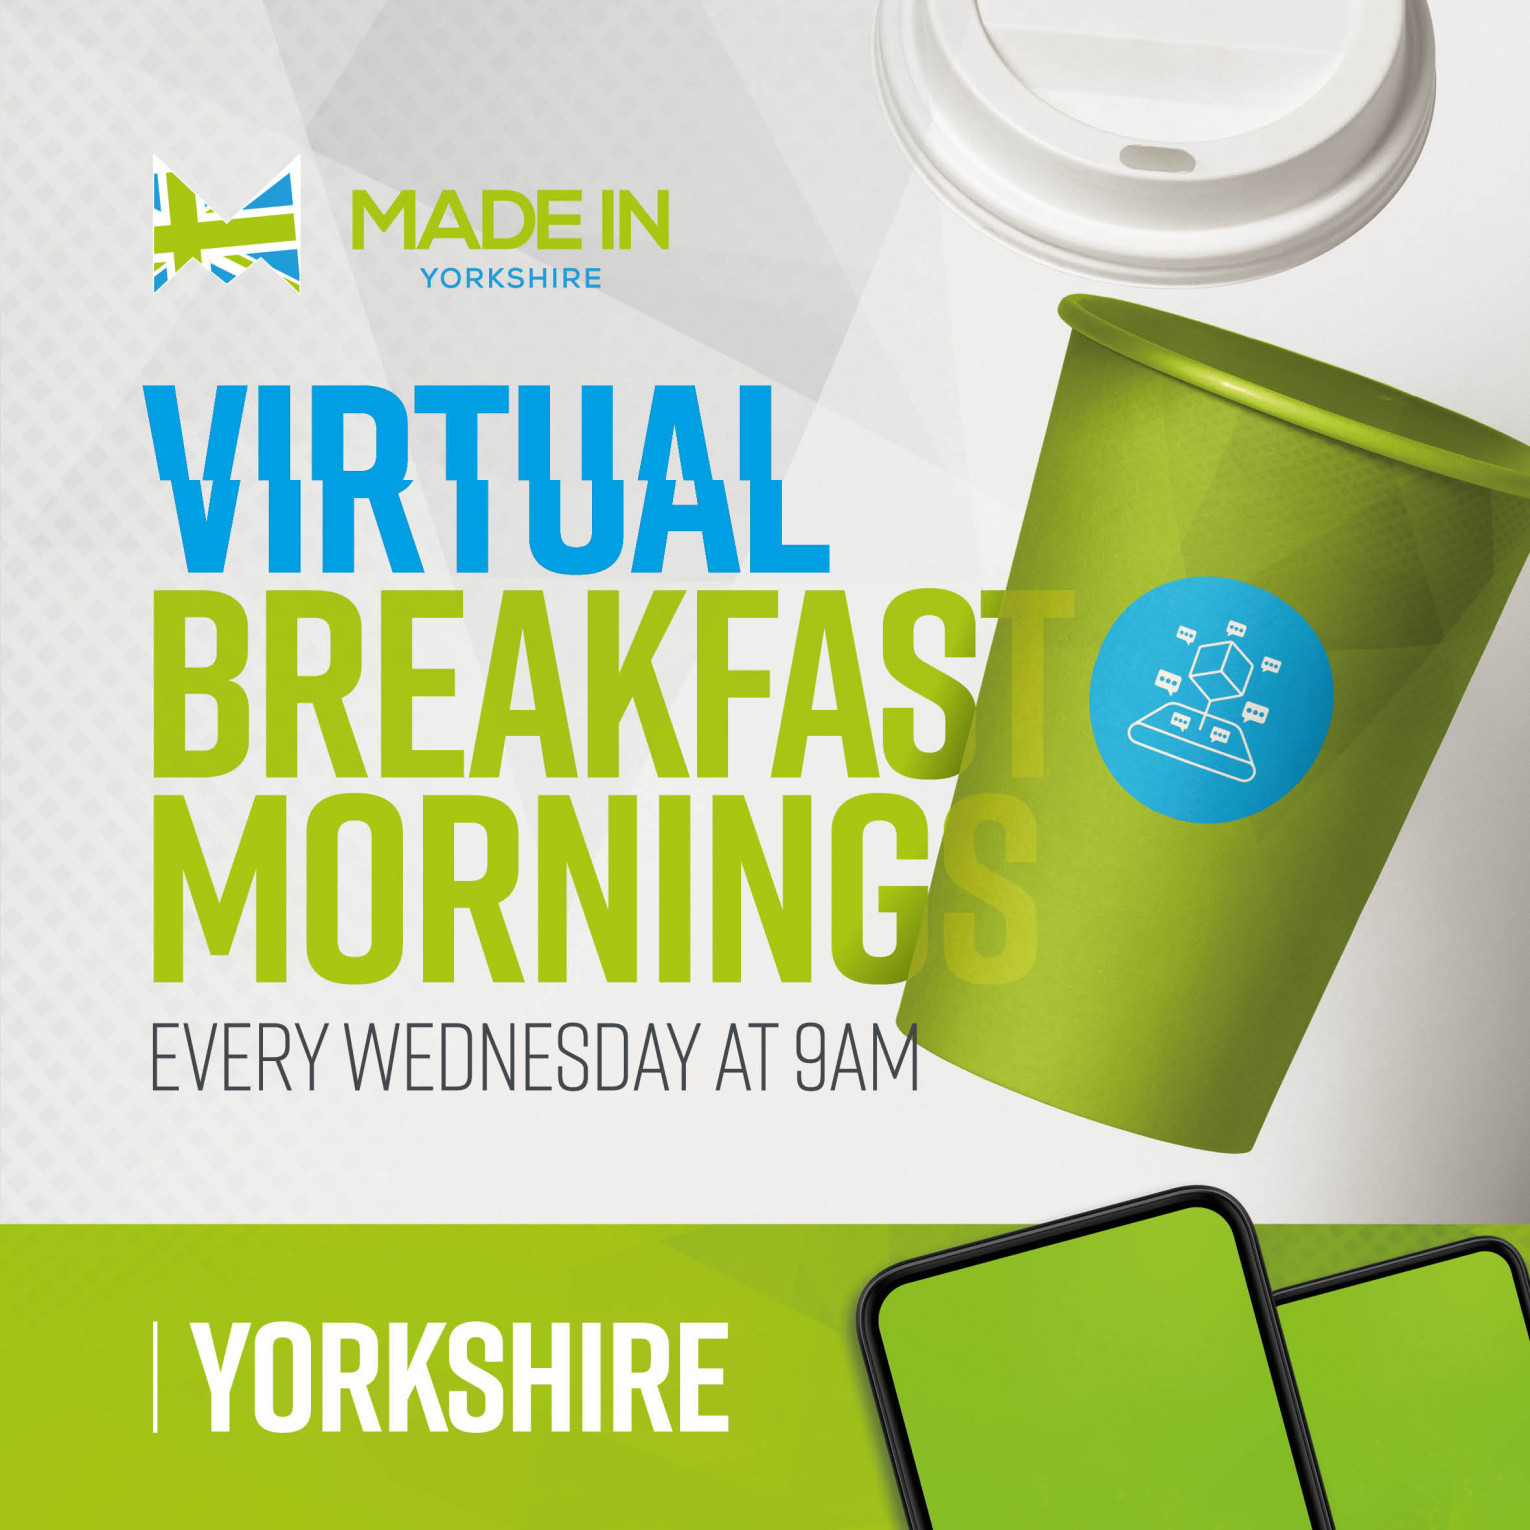 Made in Yorkshire Virtual Breakfast Morning with Cambridge HOK